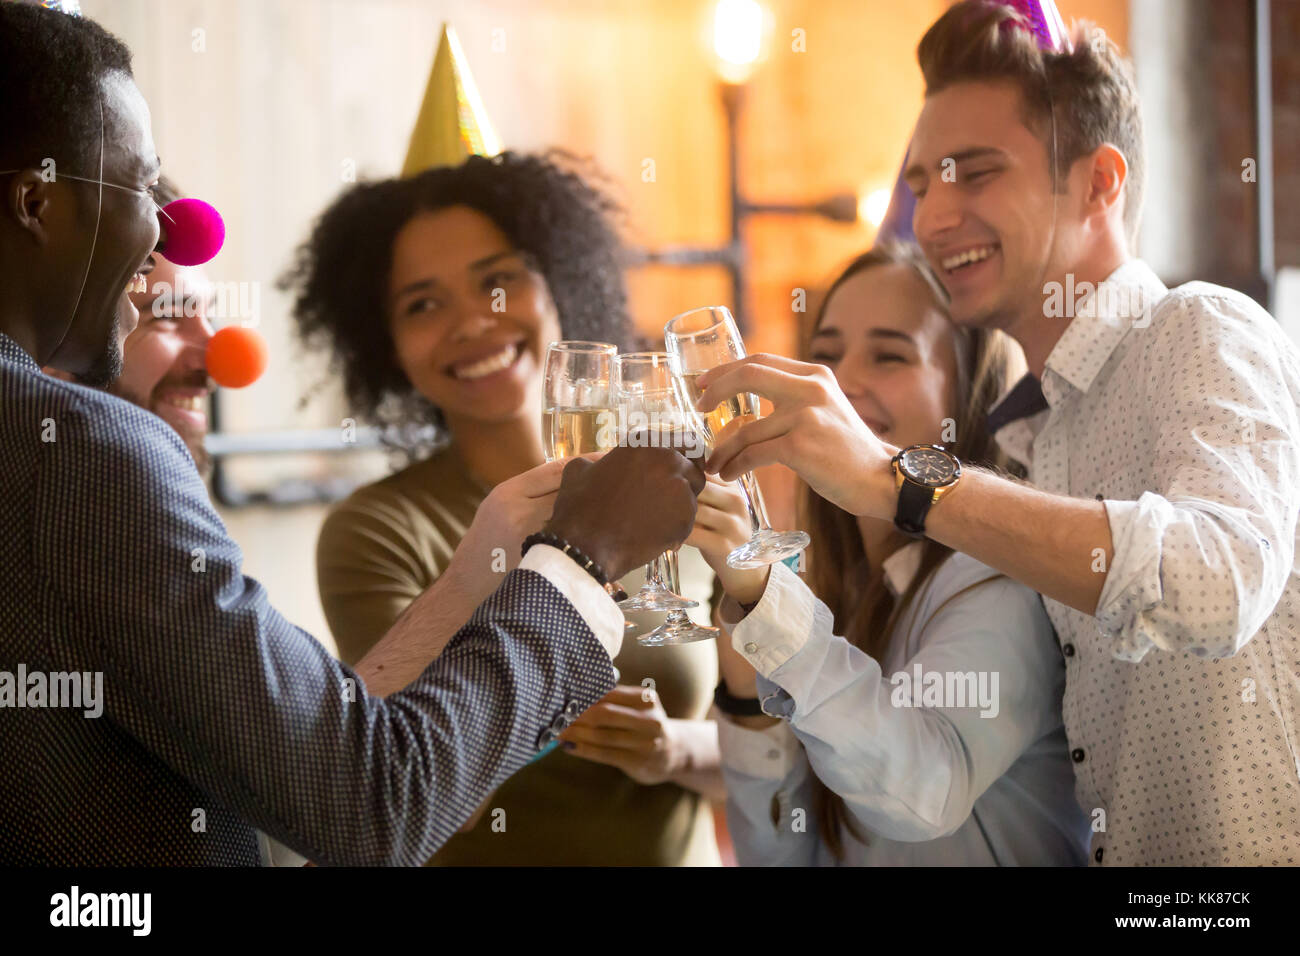 Happy black and white friends clinking glasses celebrating party - Stock Image